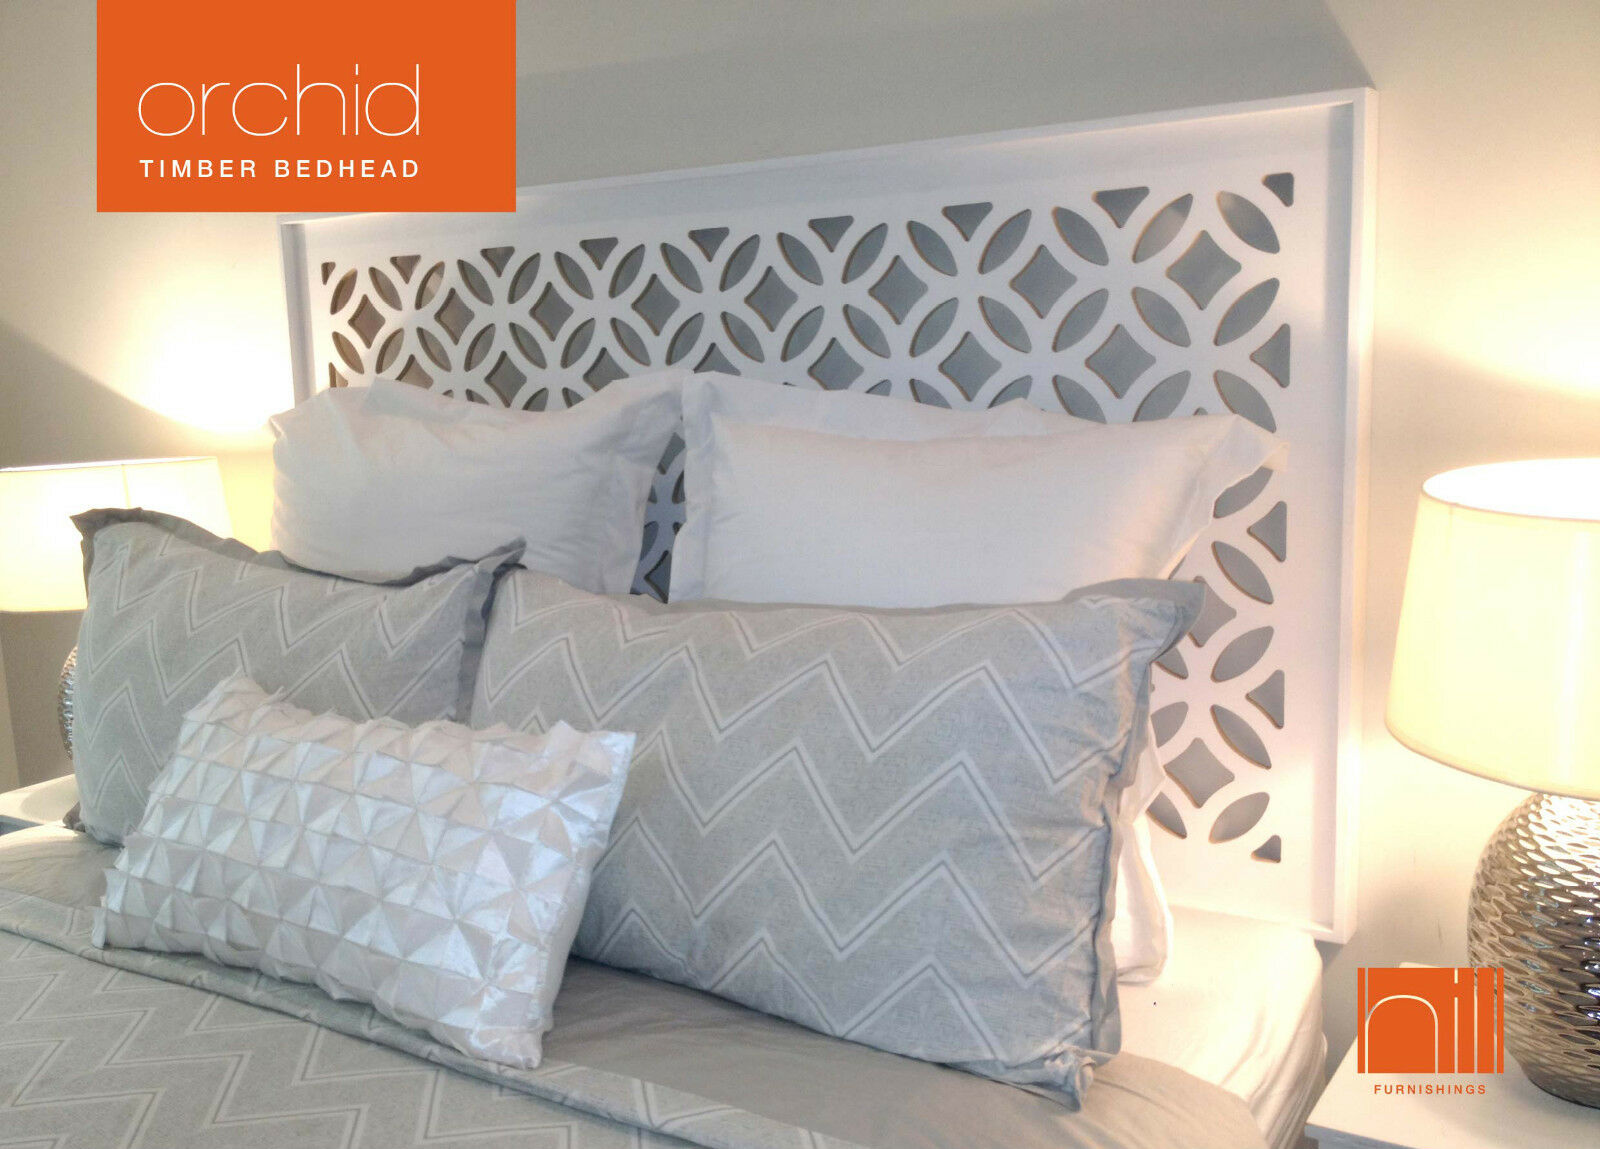 Headboard For Ensemble Orchid Timber Bedhead Headboard For Queen Ensemble